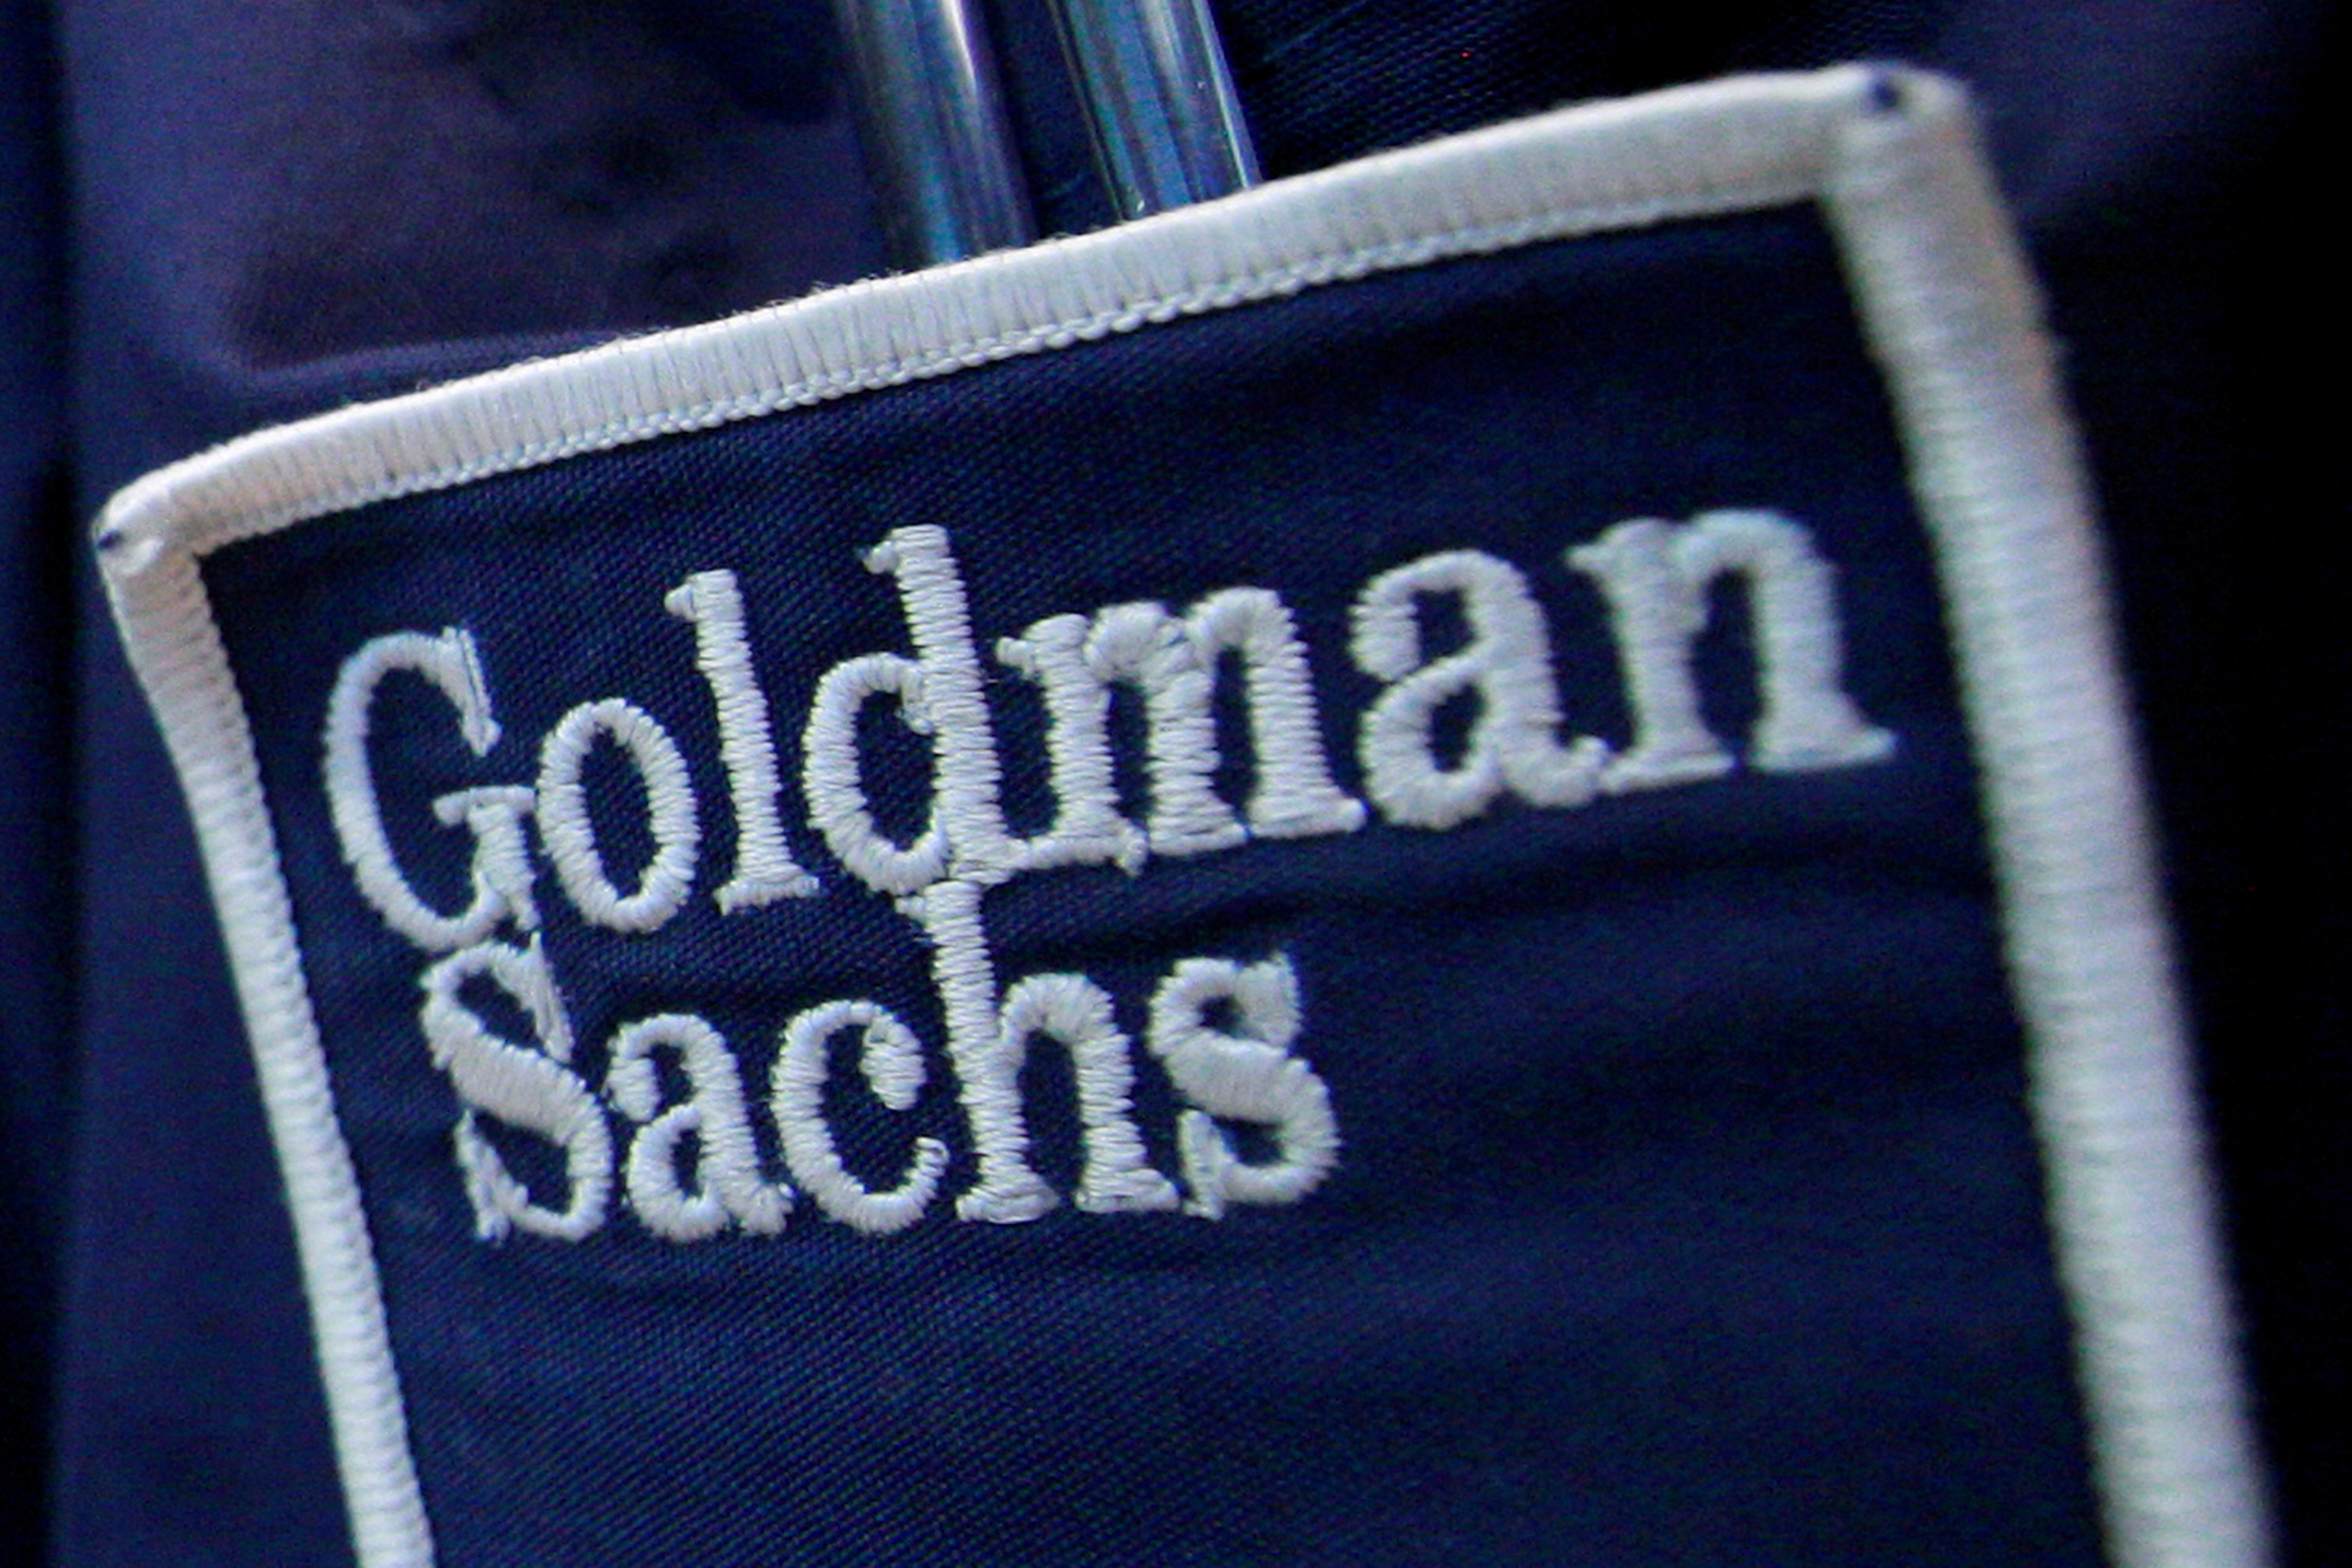 goldman sachs interview questions the definitive list trading goldman sachs interview questions the definitive list trading insider markets lifestyle